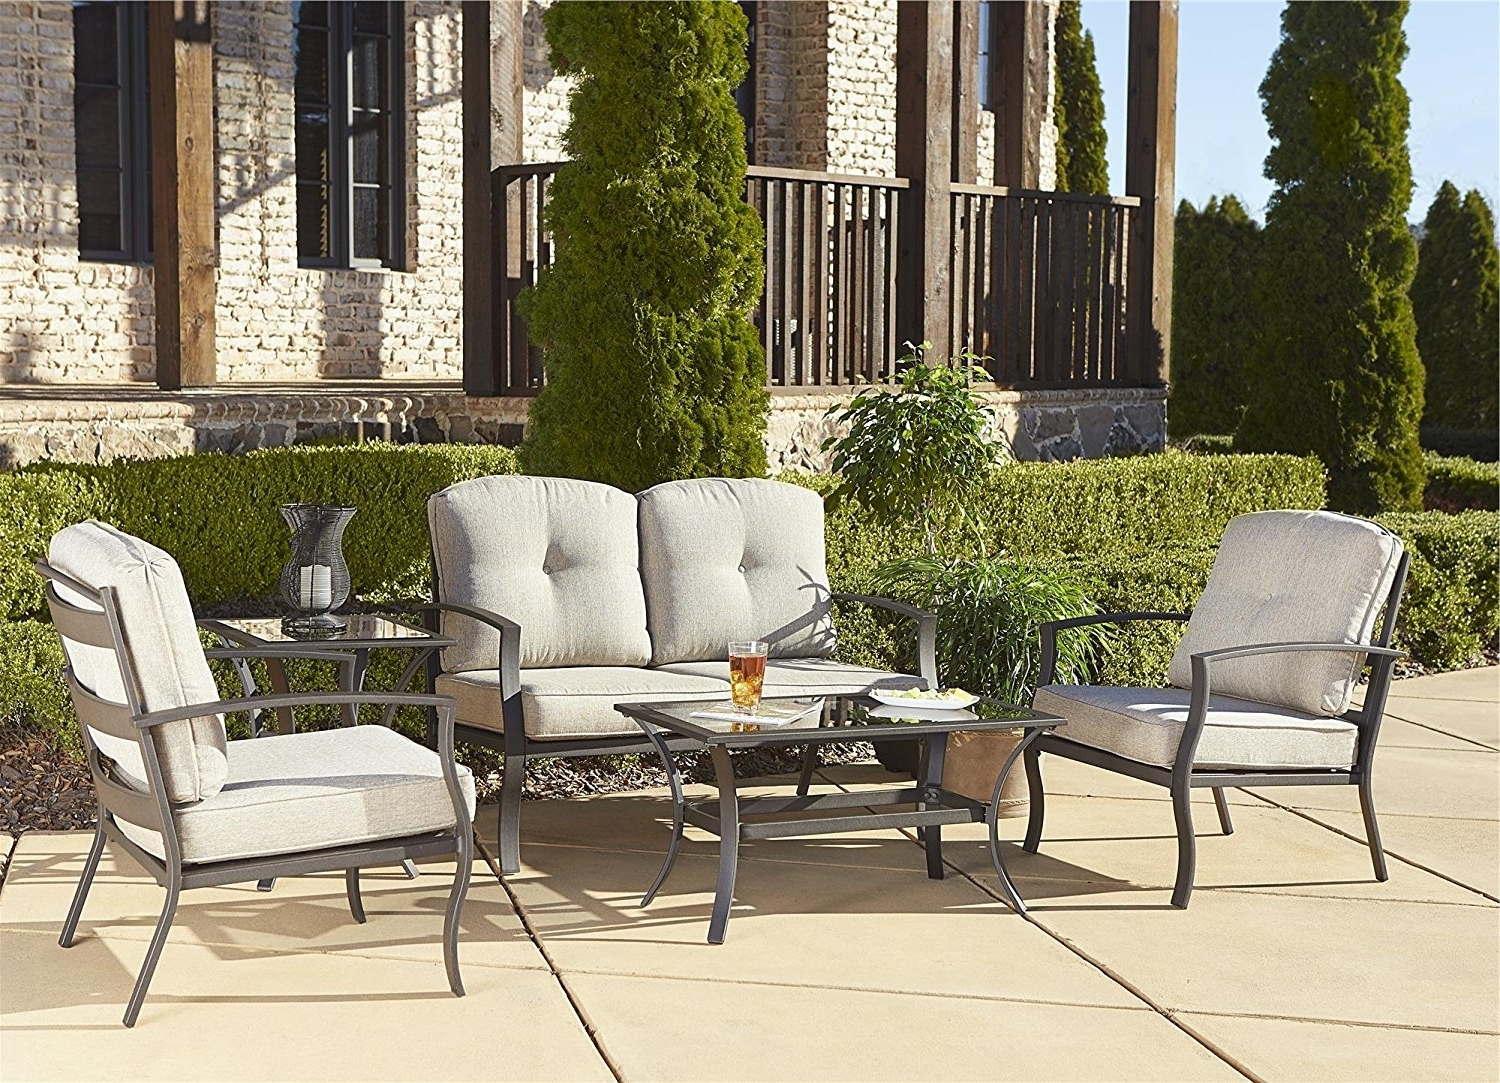 Popular Patio Conversation Sets Under $500 With Regard To Big Lots Patio Furniture Target Patio Furniture Gas Fire Pit Chat (View 17 of 20)